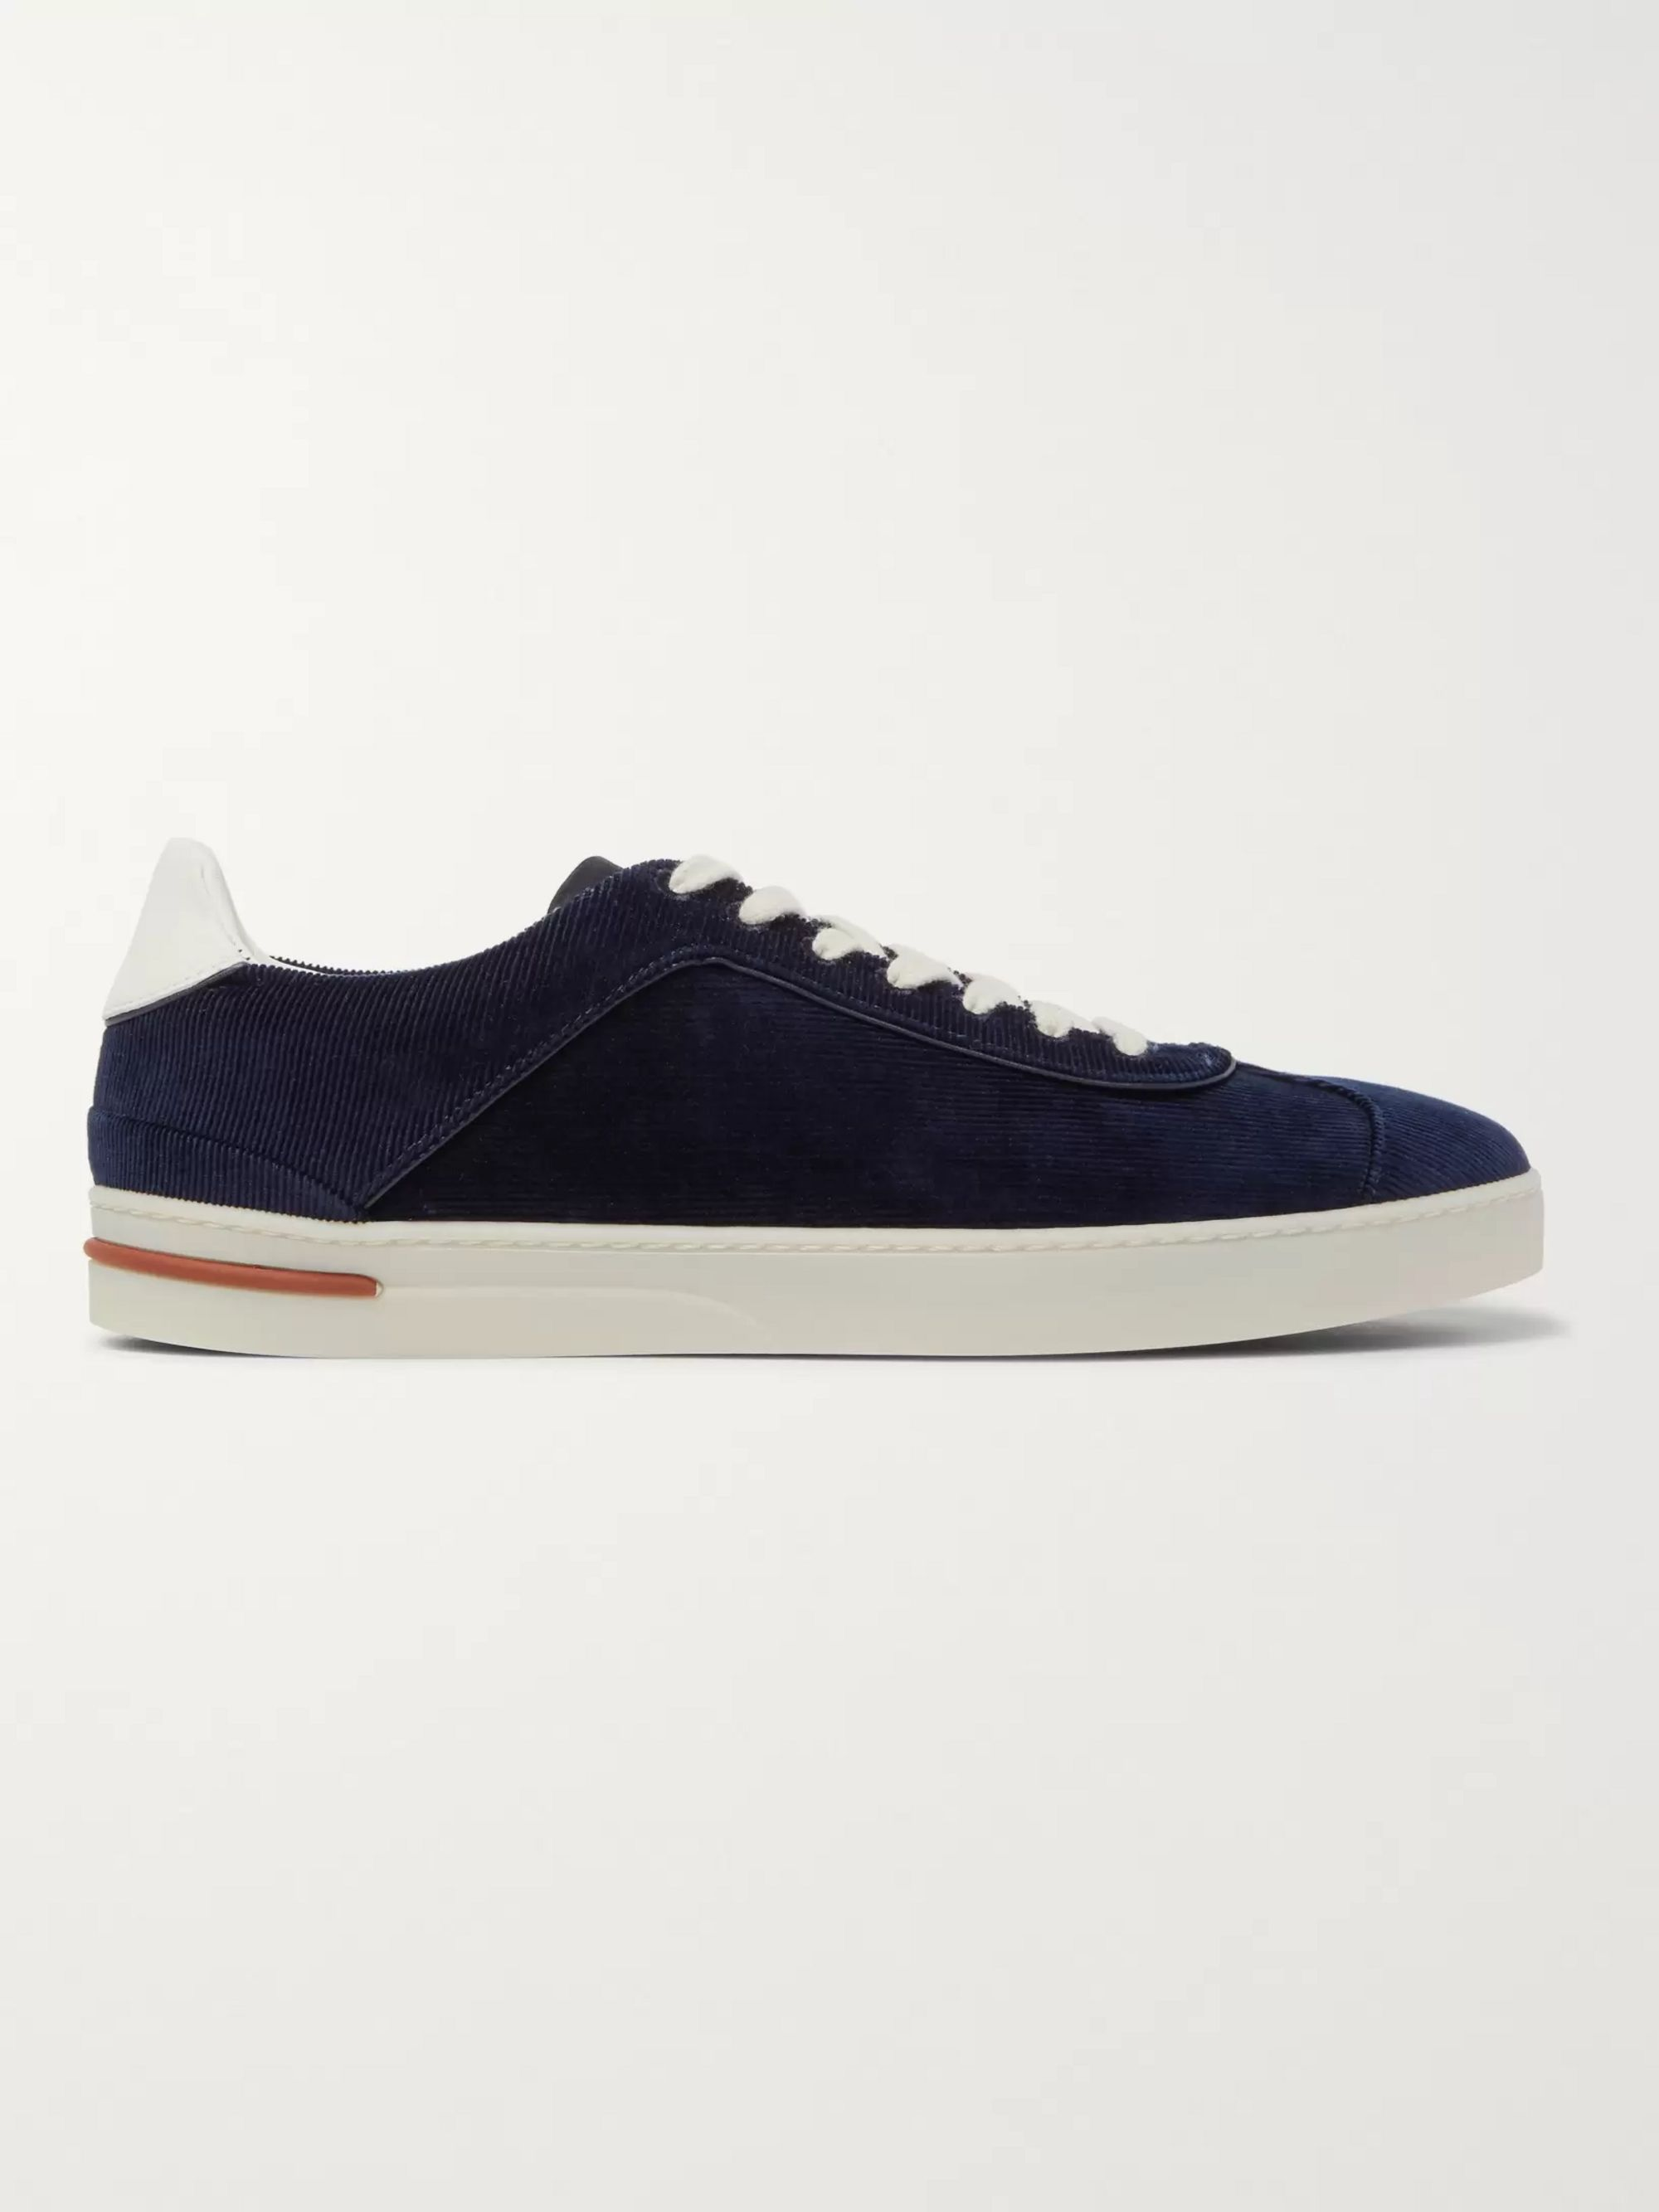 LORO PIANA 70's Walk Corduroy Sneakers